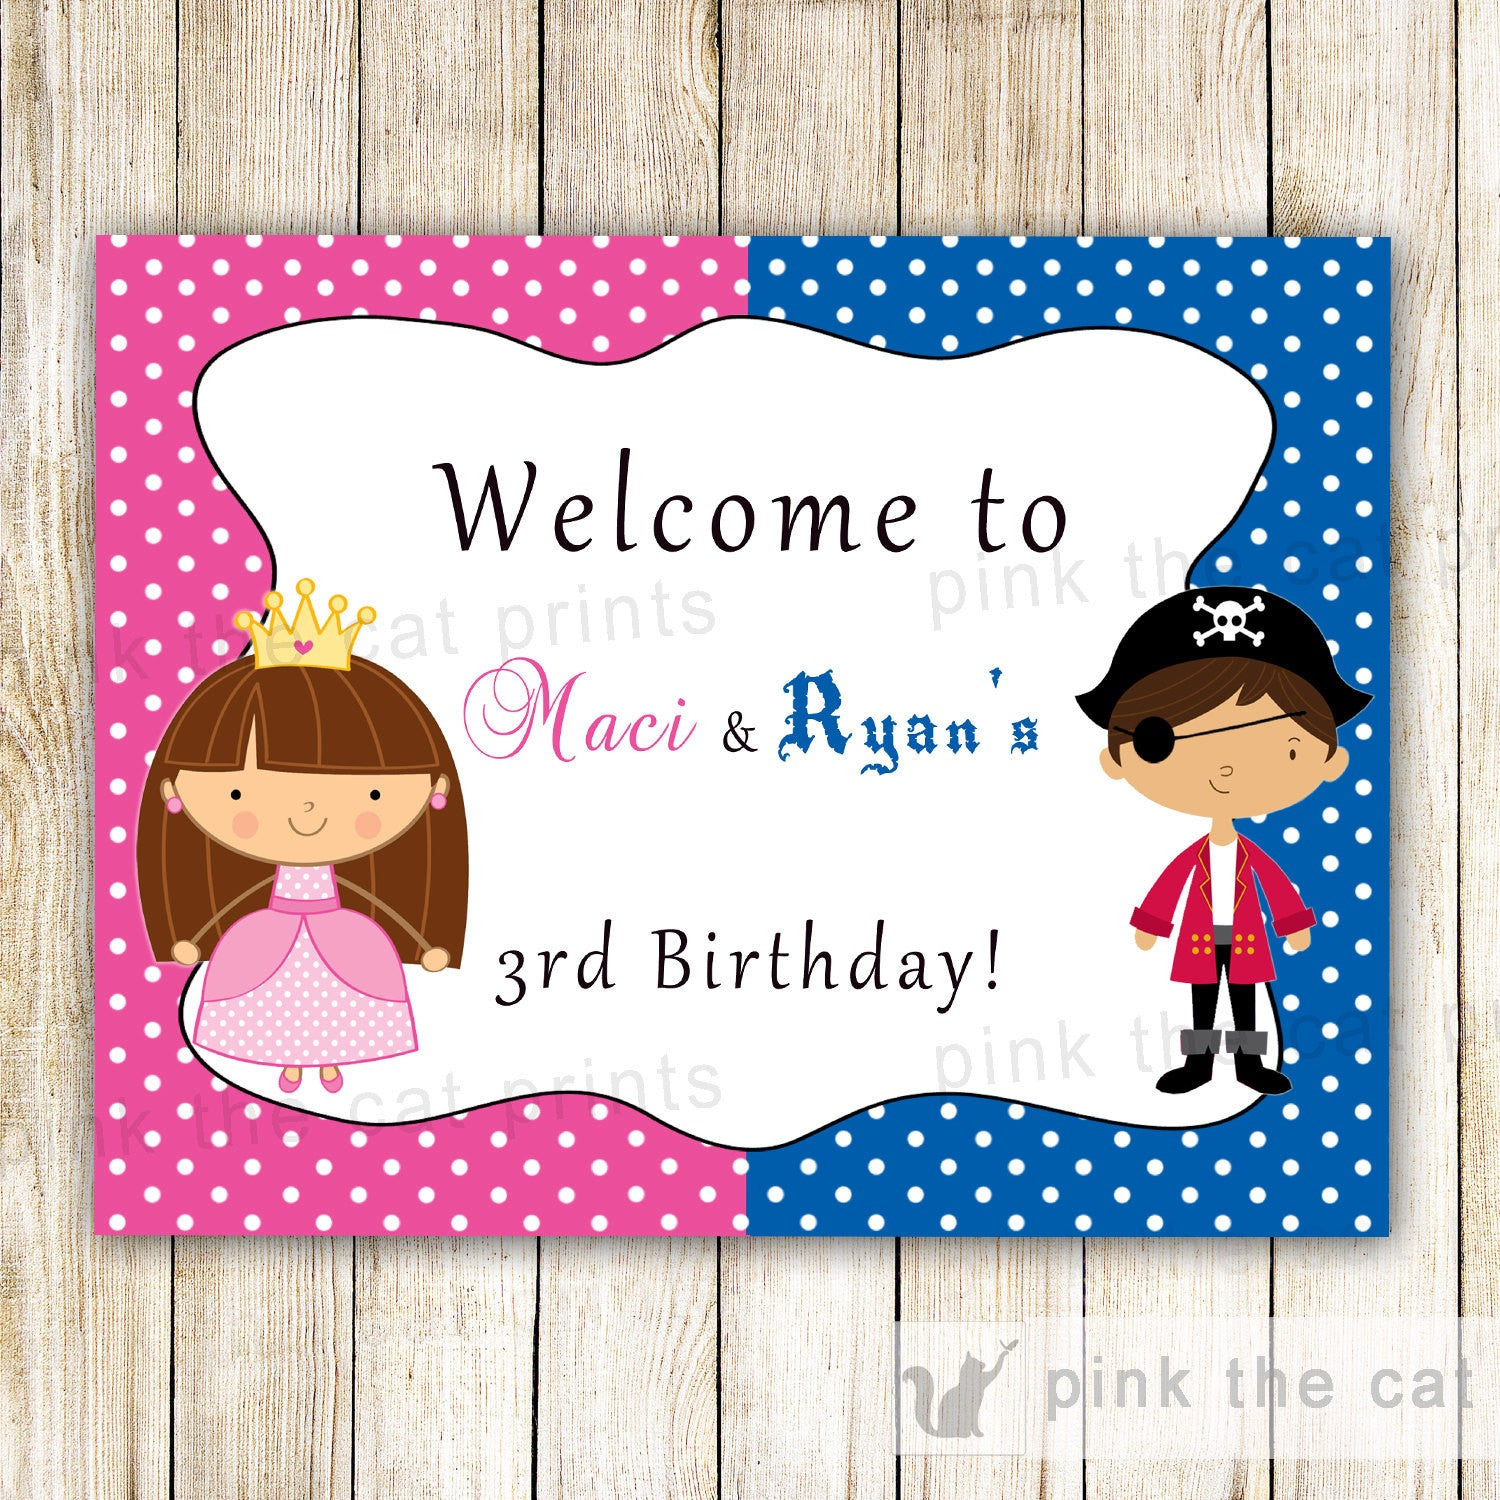 Pirate Princess Welcome Sign Kids Birthday Party – Pink The Cat